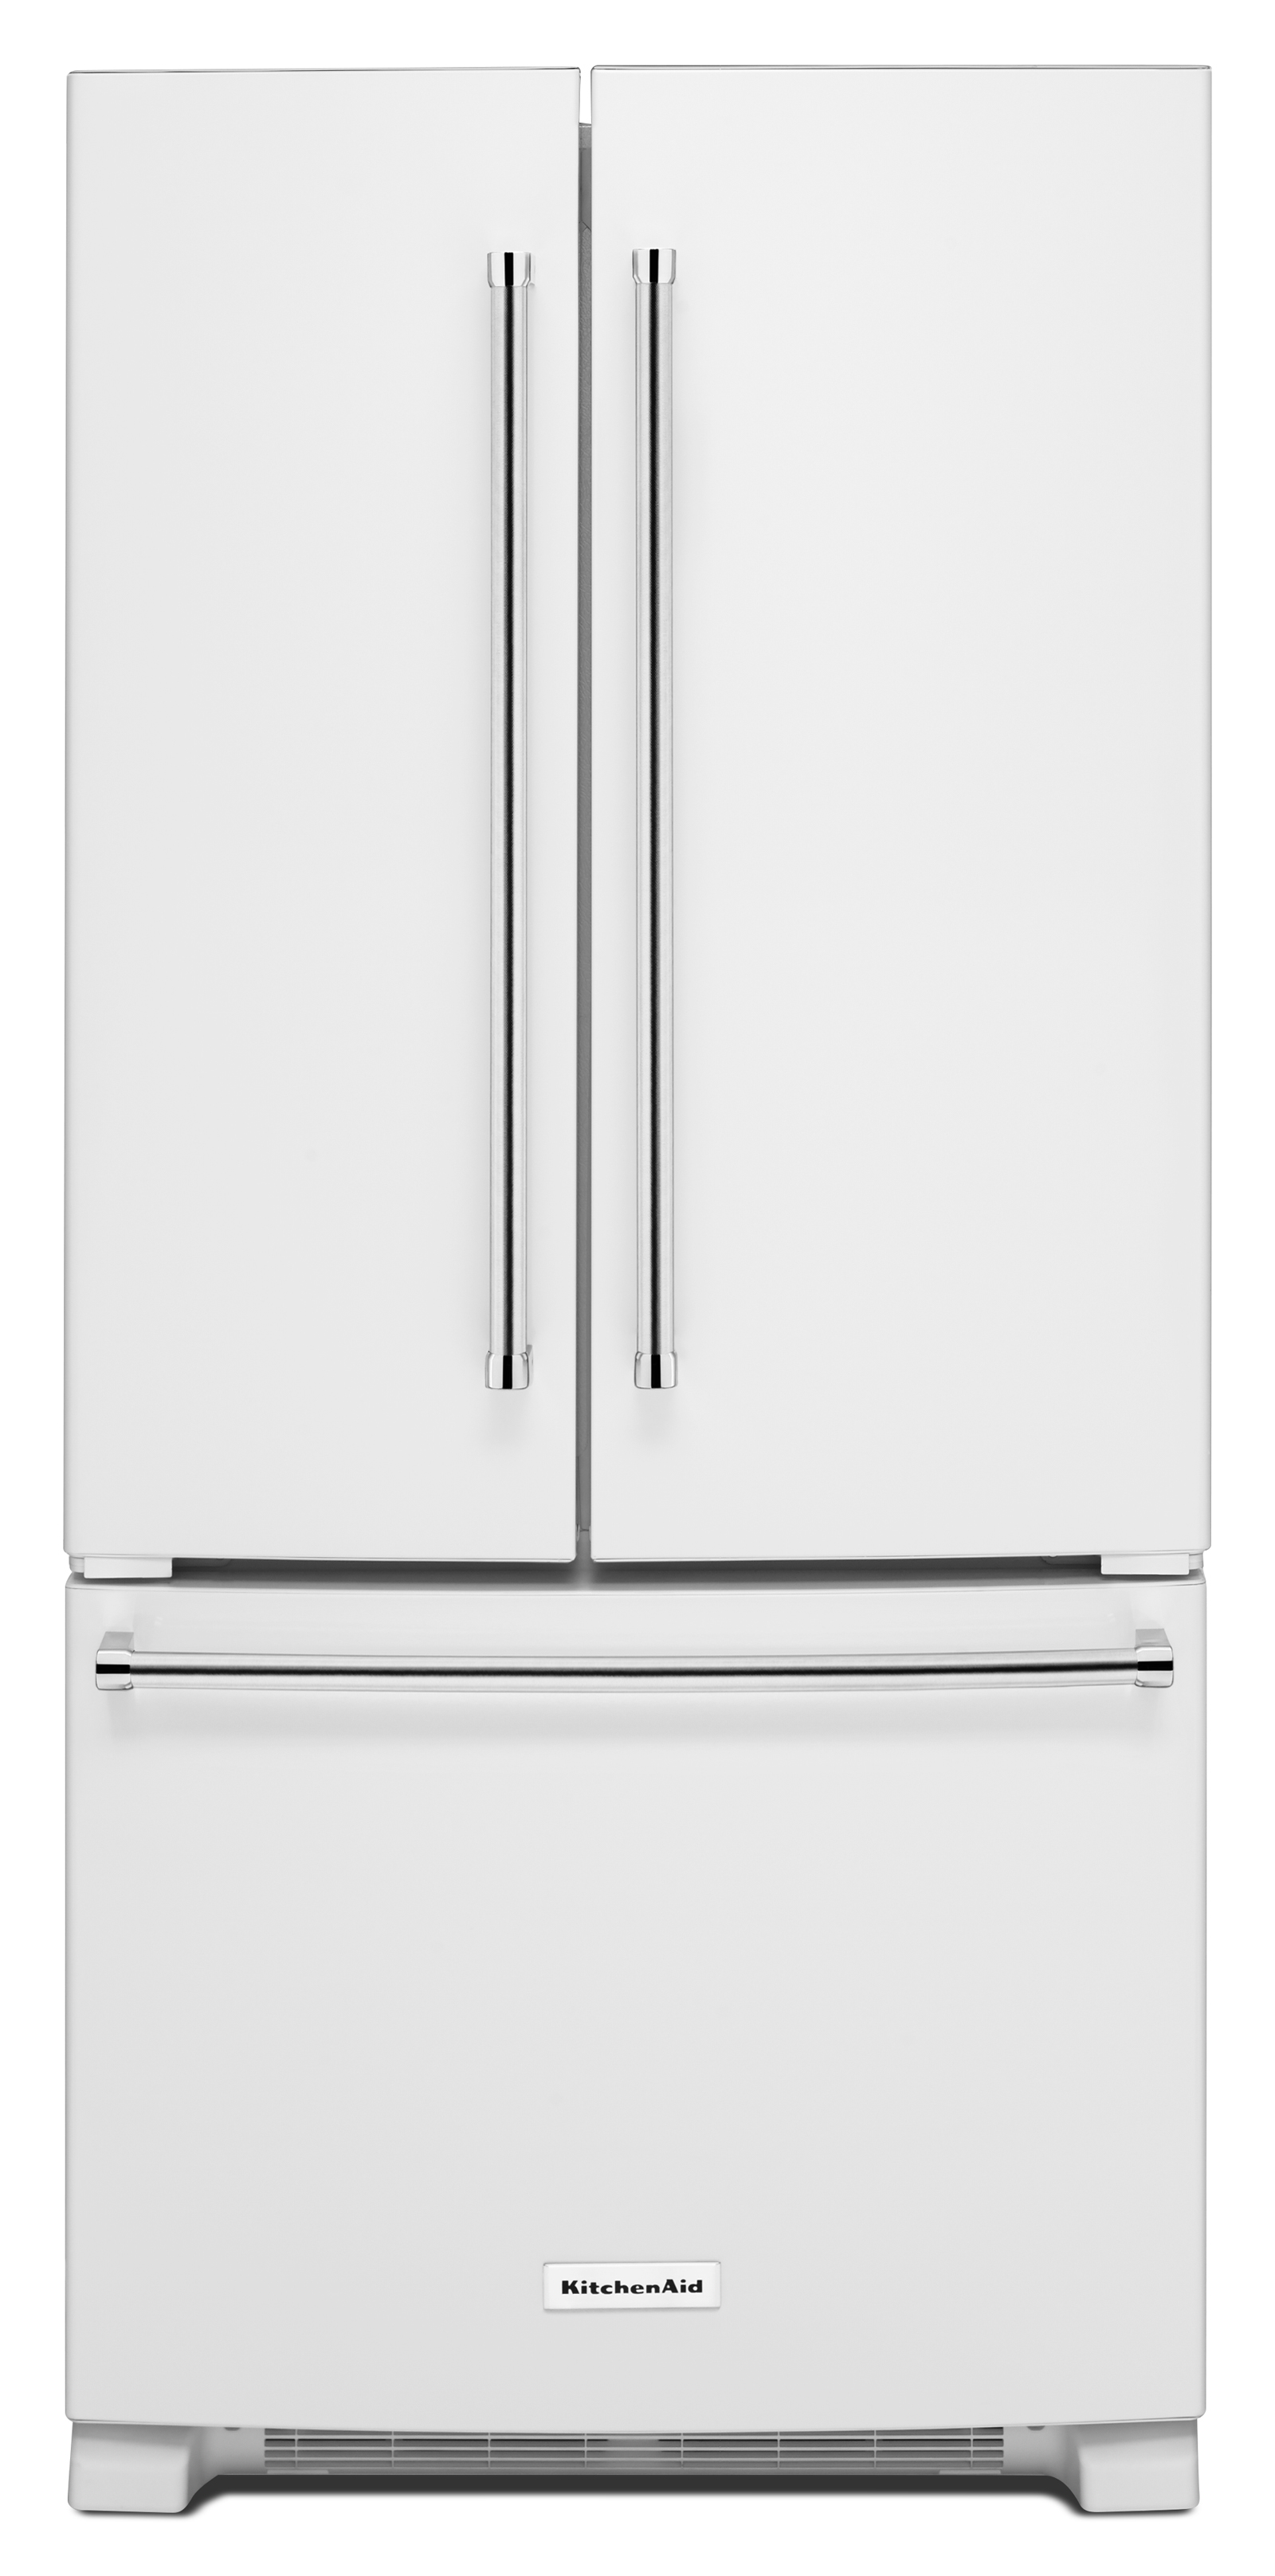 KitchenAid KRFF302EWH 22 cu. ft. French Door Refrigerator - White